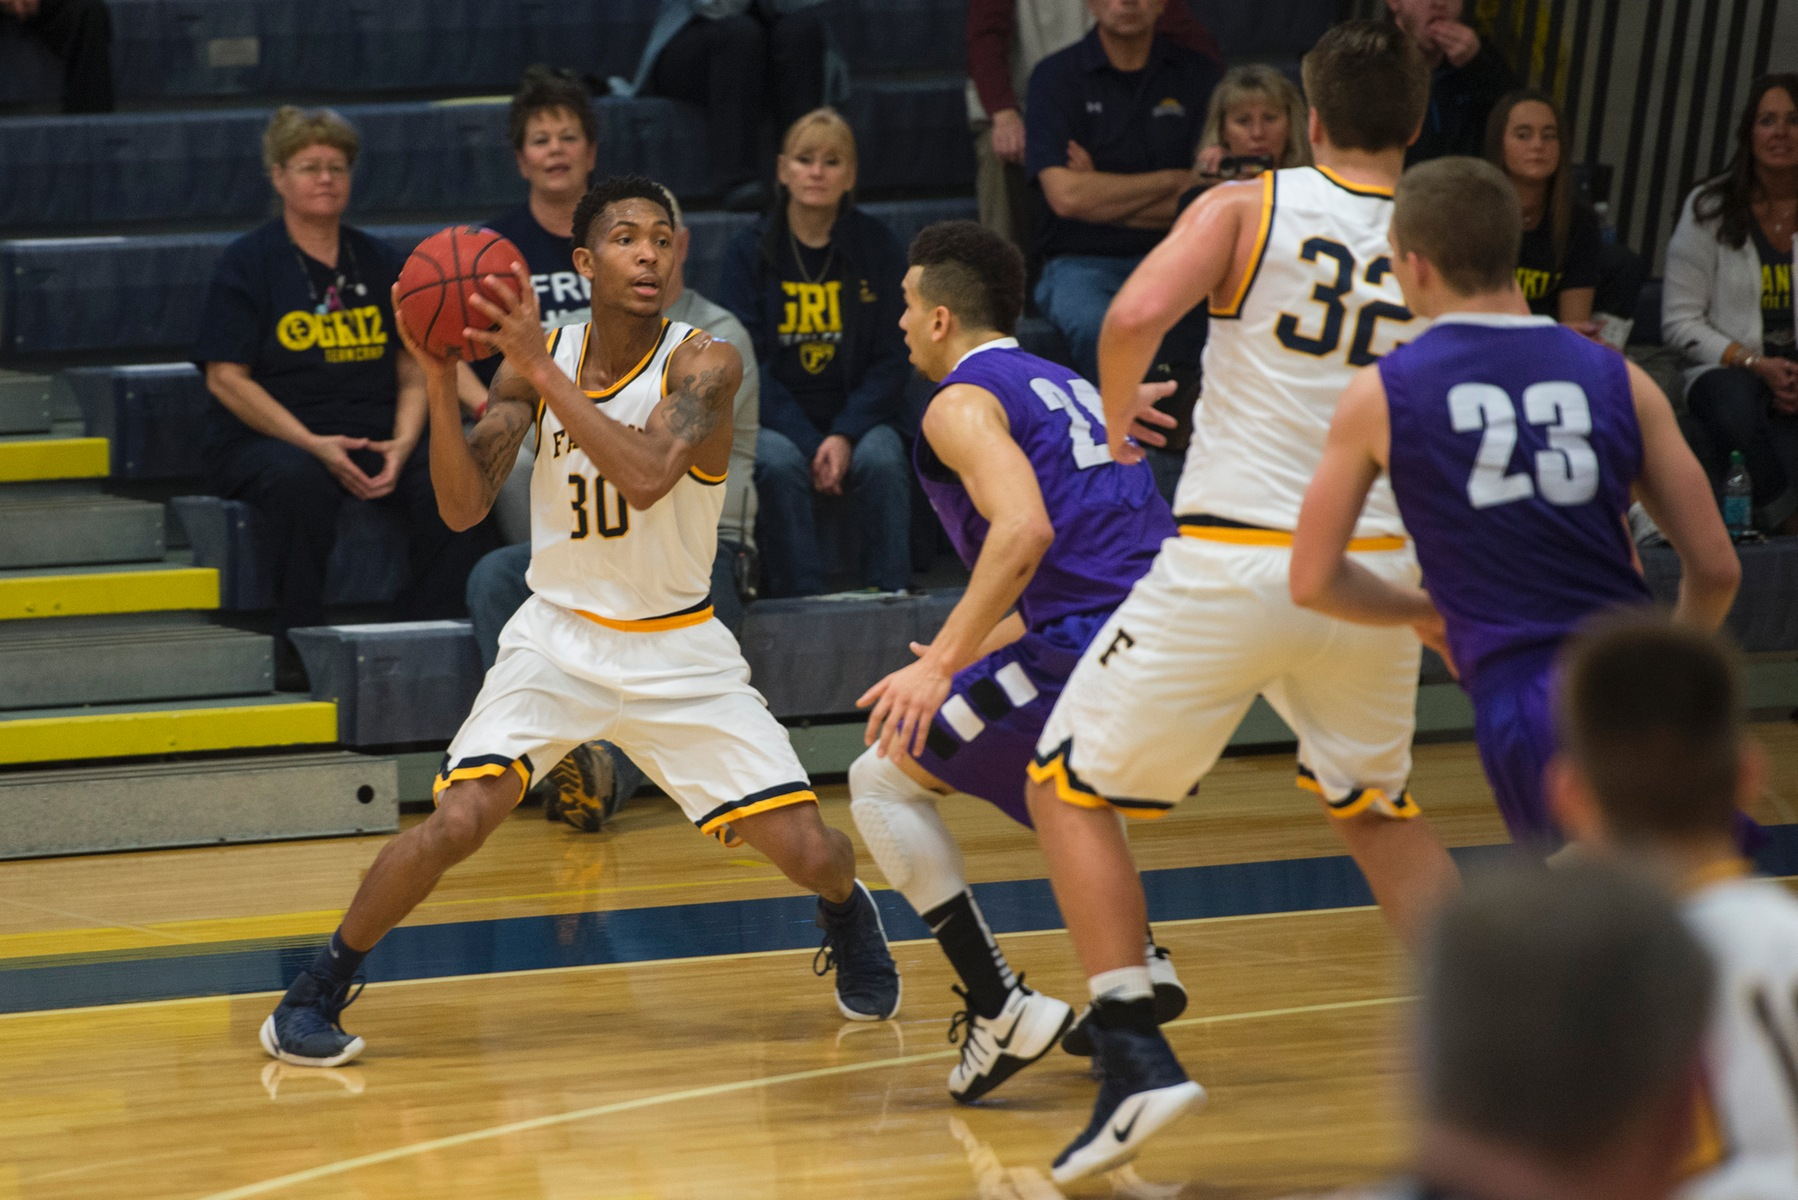 Men's Basketball Team falls at Mount St. Joseph